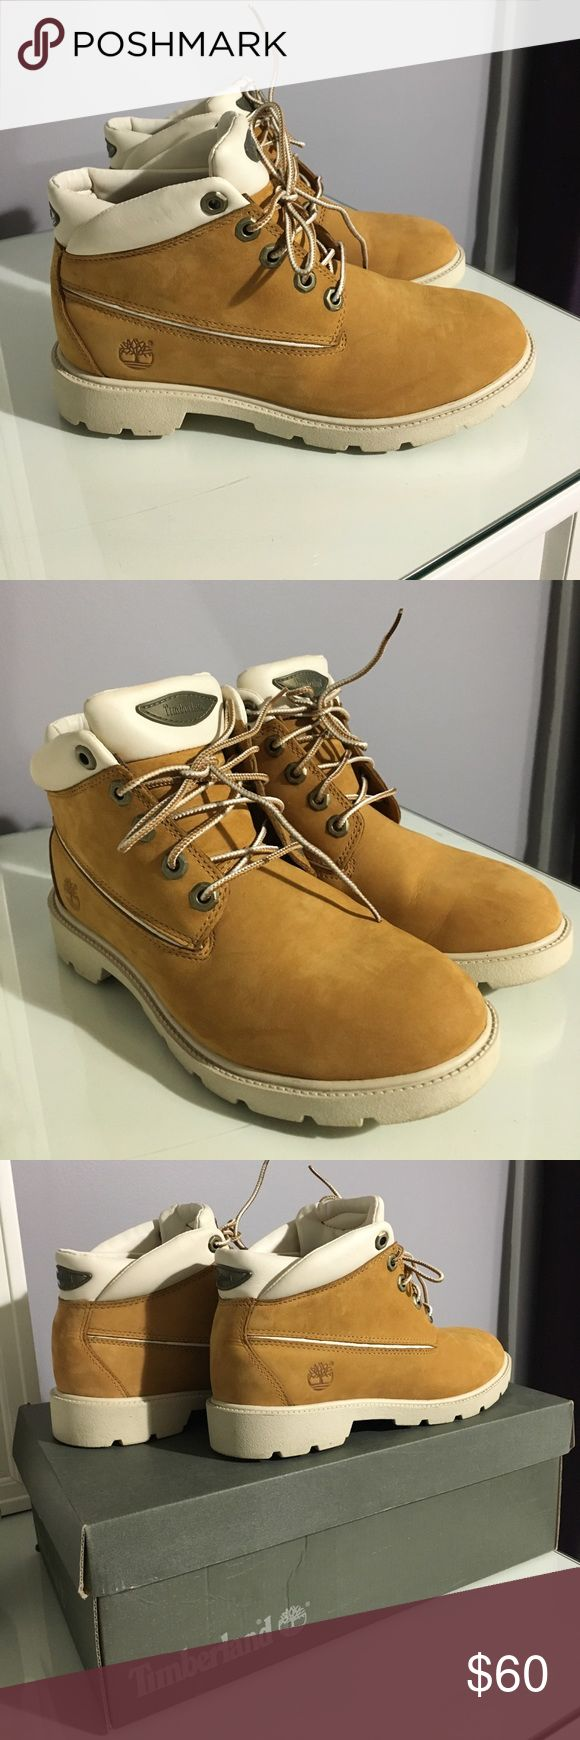 Timberland 5 Eye Chukka EUC Timberland 5 Eye Chukka in juniors size 5.5 (unisex) equivalent to a woman's 7.5-8. My daughter is a size 8 in women's & fits comfortably. Great winter boots. Will send in original box. All reasonable offers welcomed 🙂 Timberland Shoes Boots